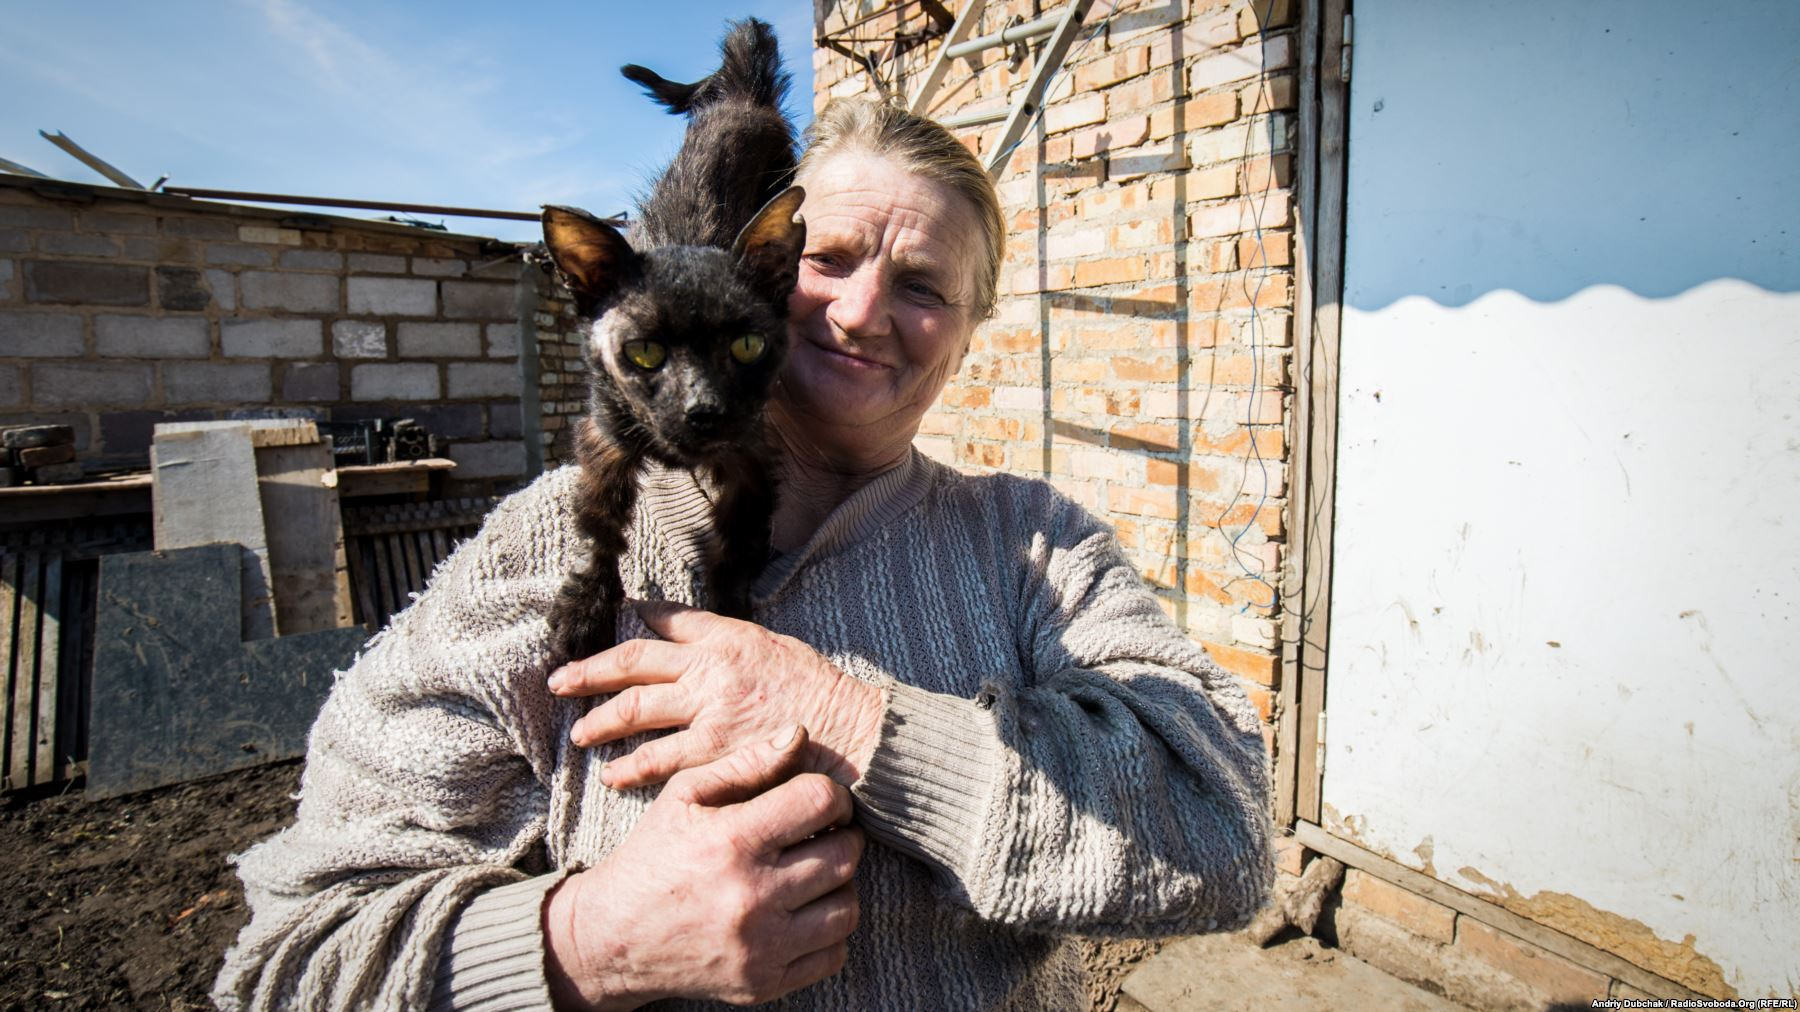 "Kral with her cat, Timka. The cat was discovered badly wounded ""with blood covering half of its face"" after a recent battle, and Kral is now nursing him back to health. Photo by: Andriy Dubchak"